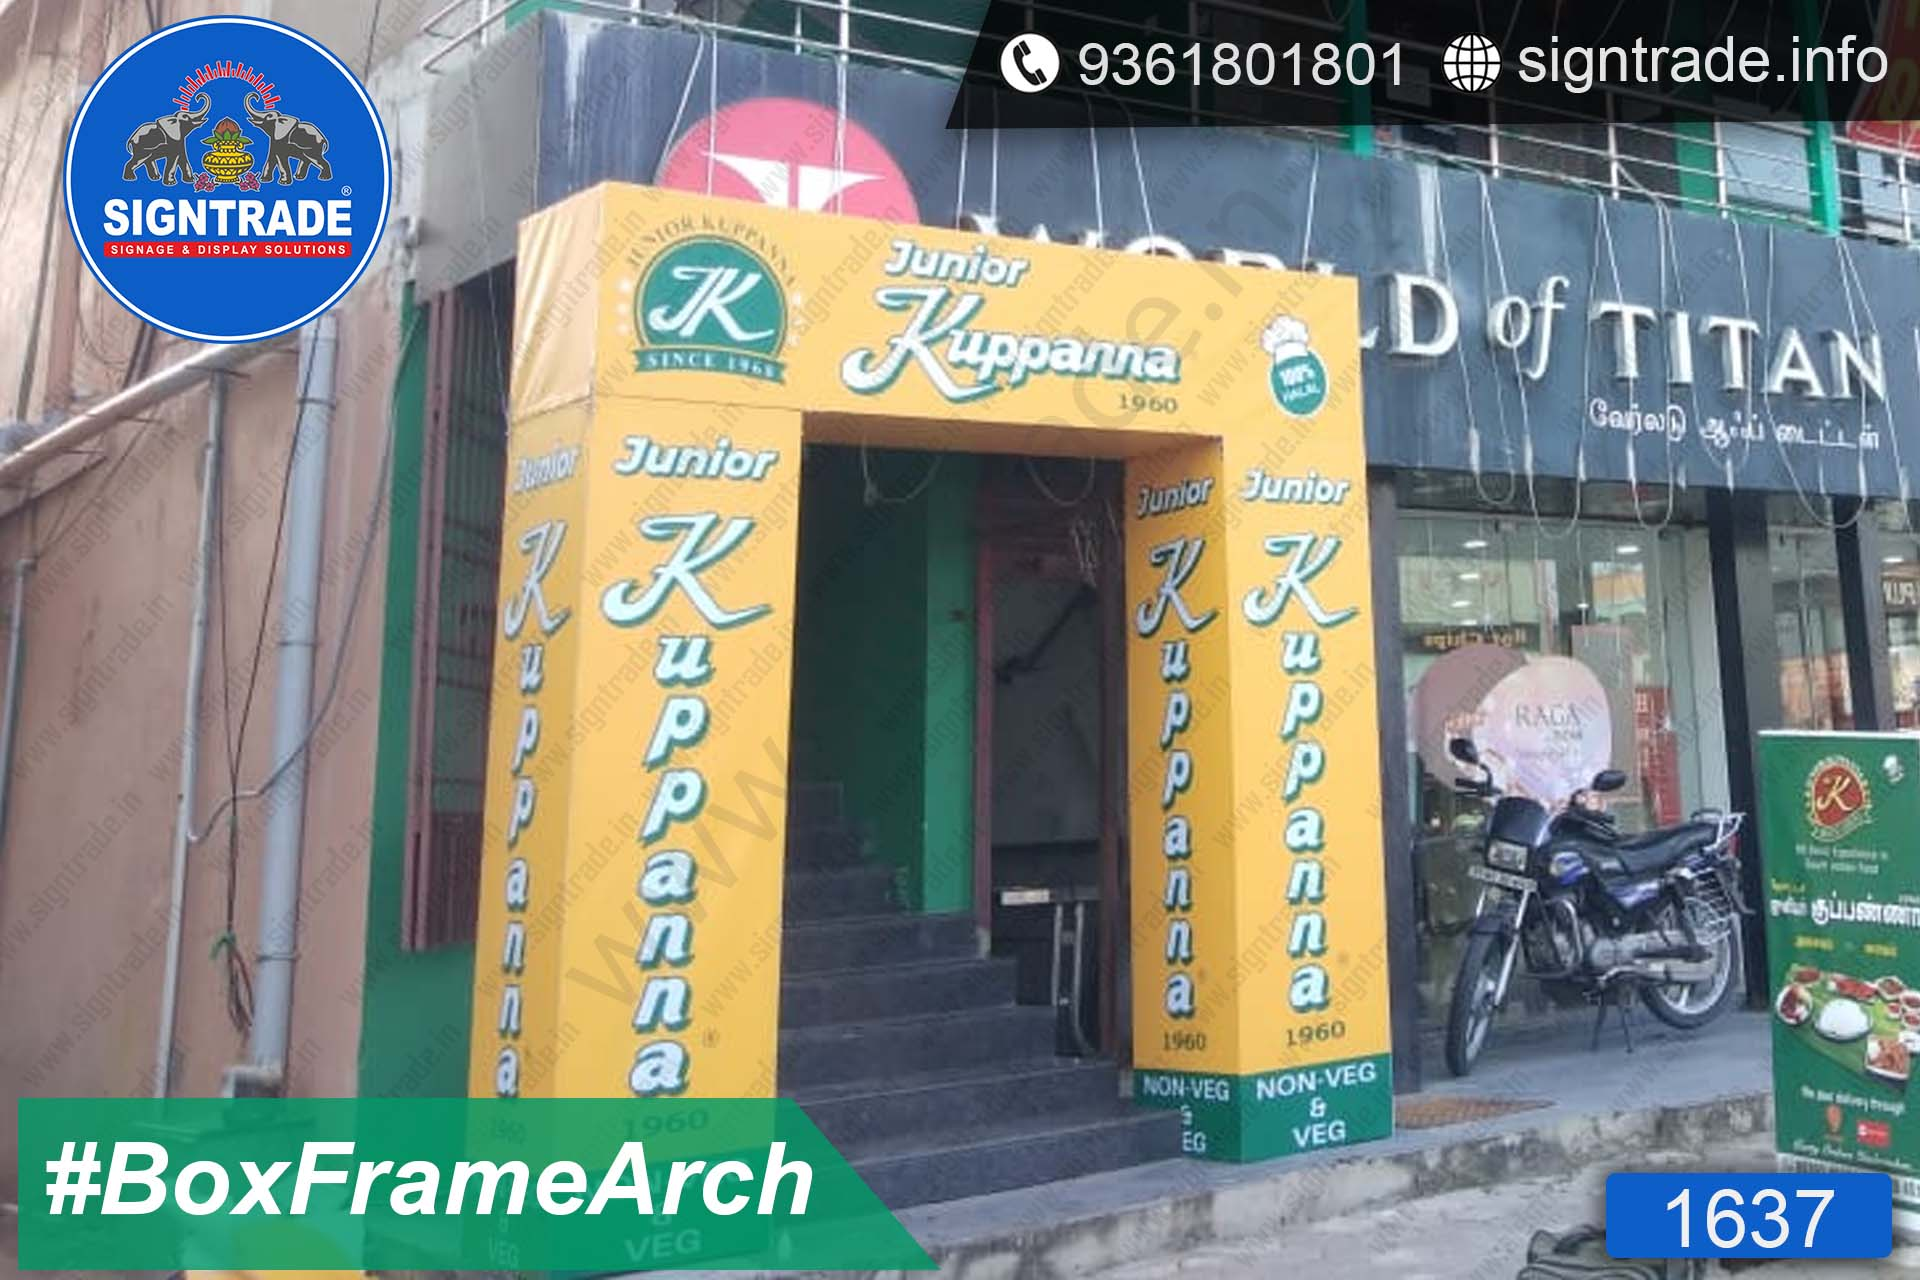 Hotel Junior Kuppana, Chennai - SIGNTRADE - Backlit Entrance Arch Manufacturers in Chennai